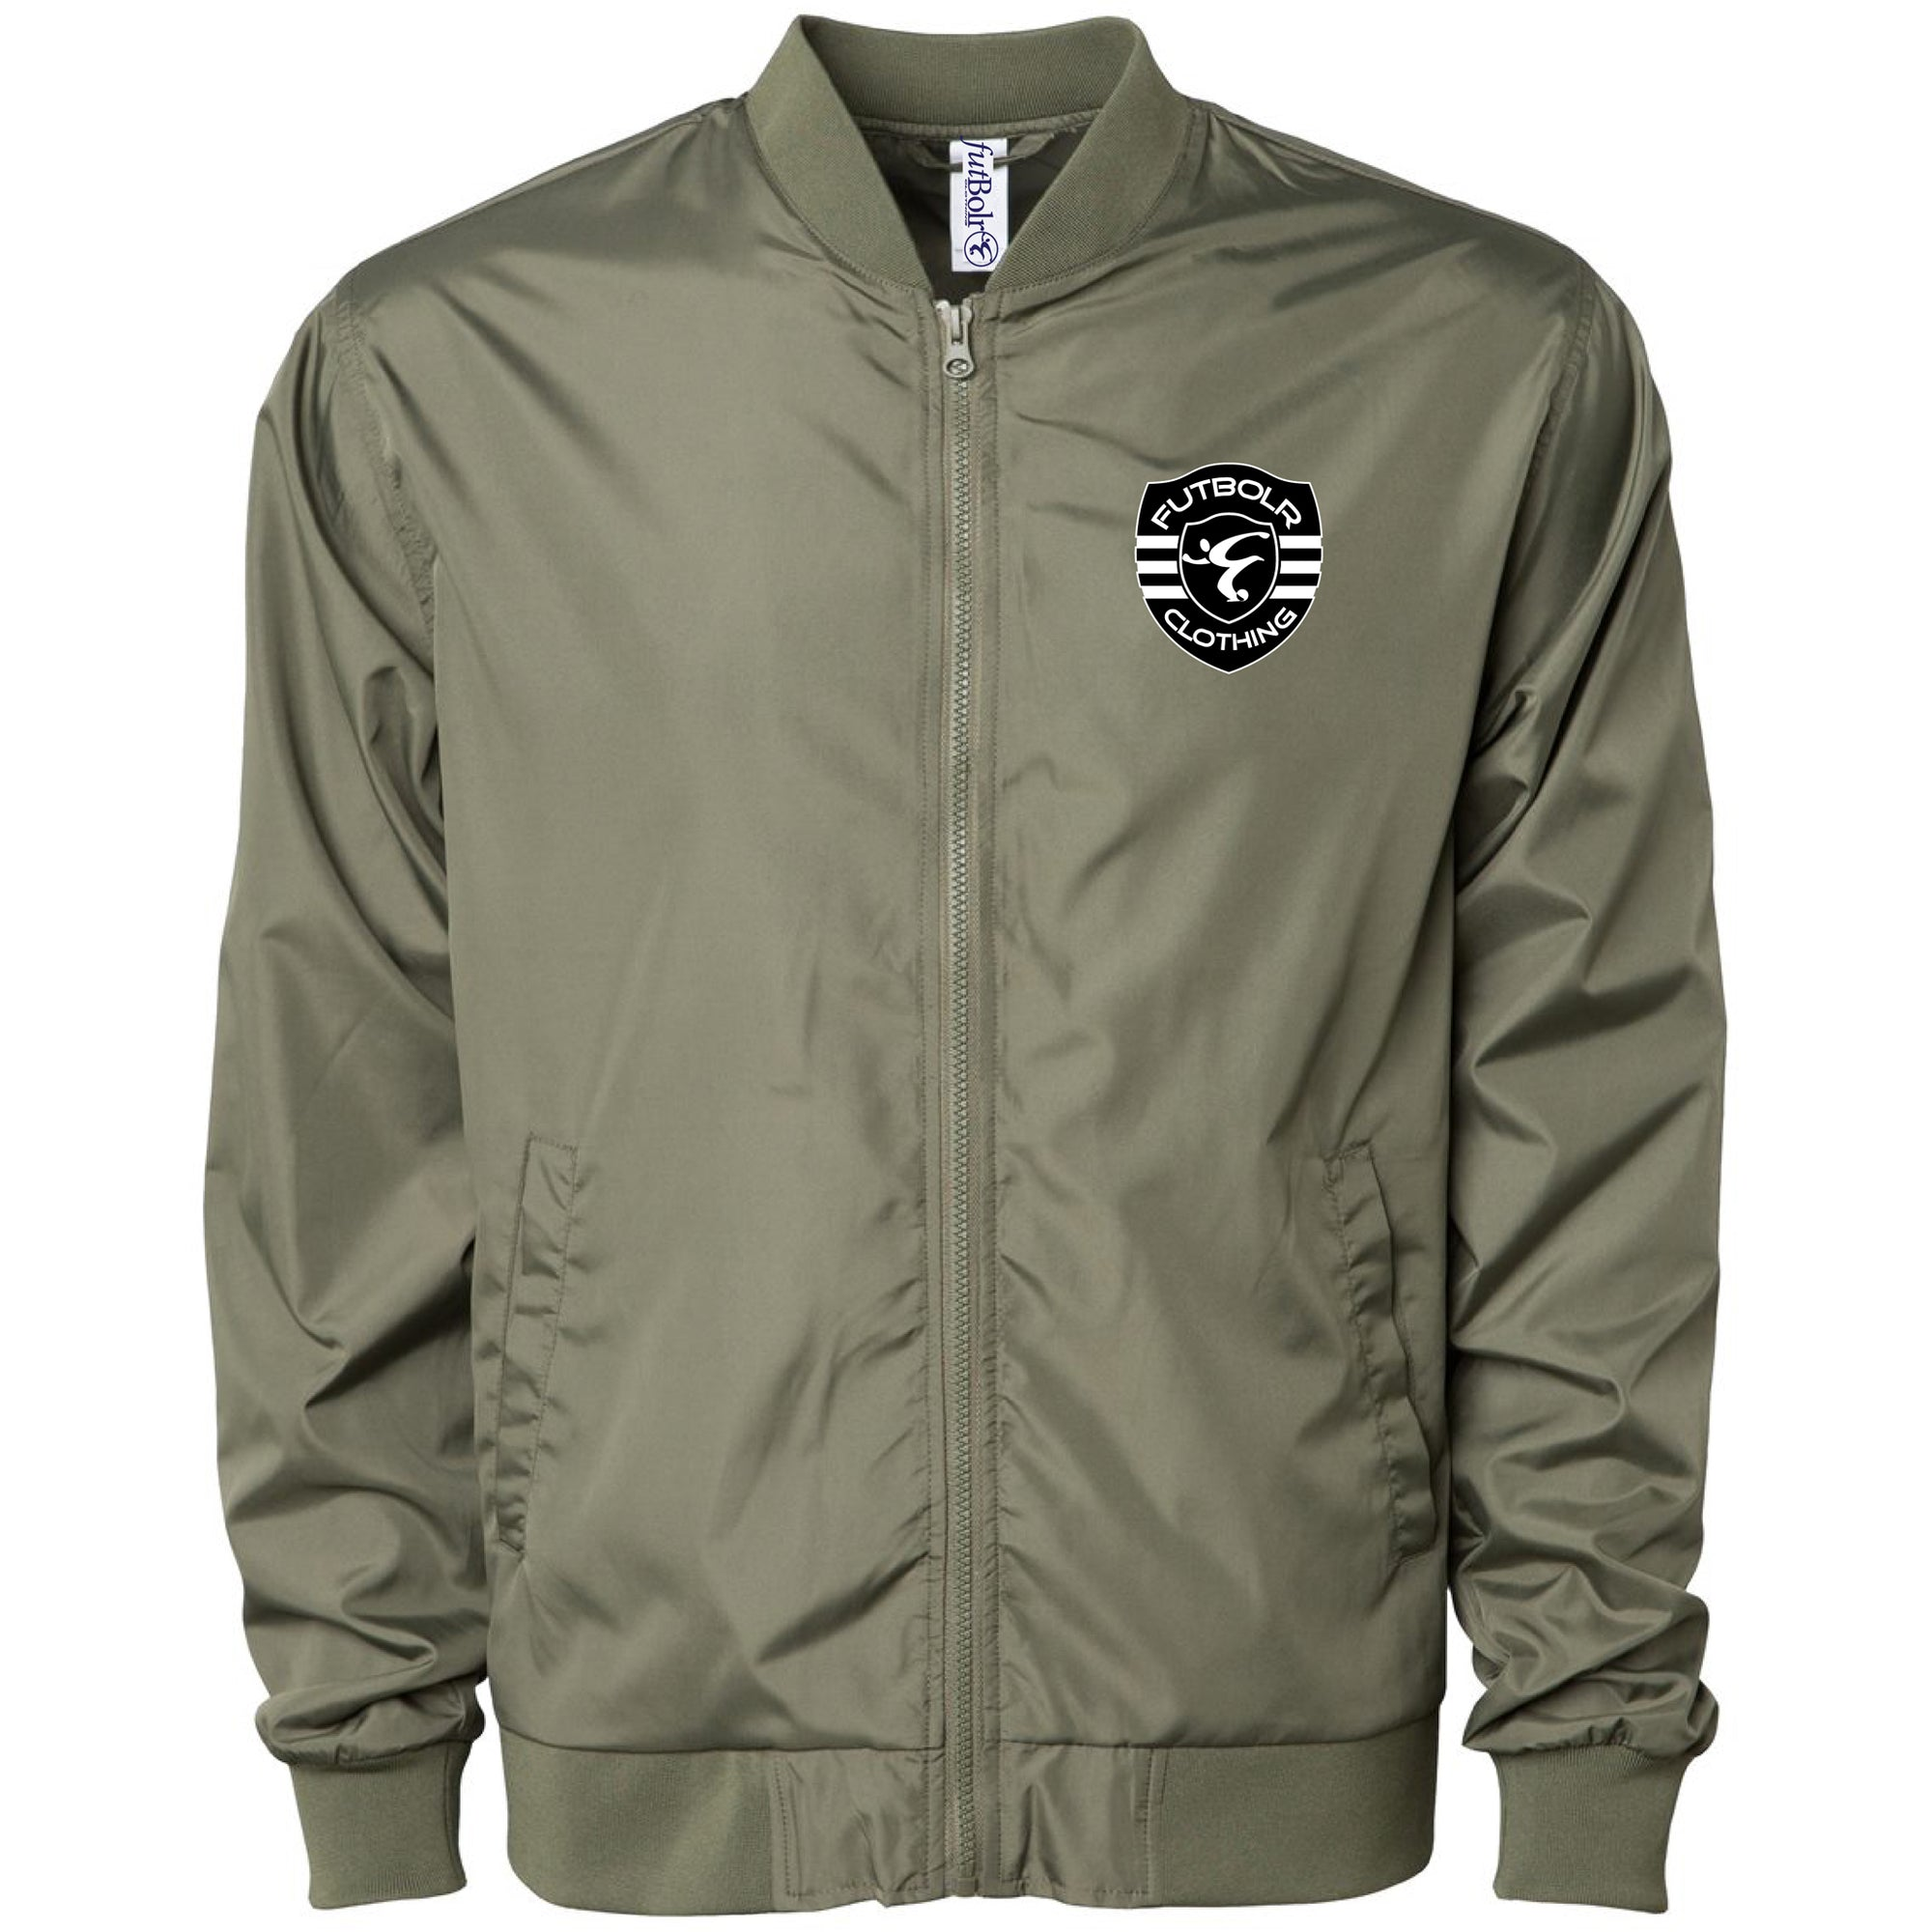 Futbolr End Racism Light Bomber Jackets